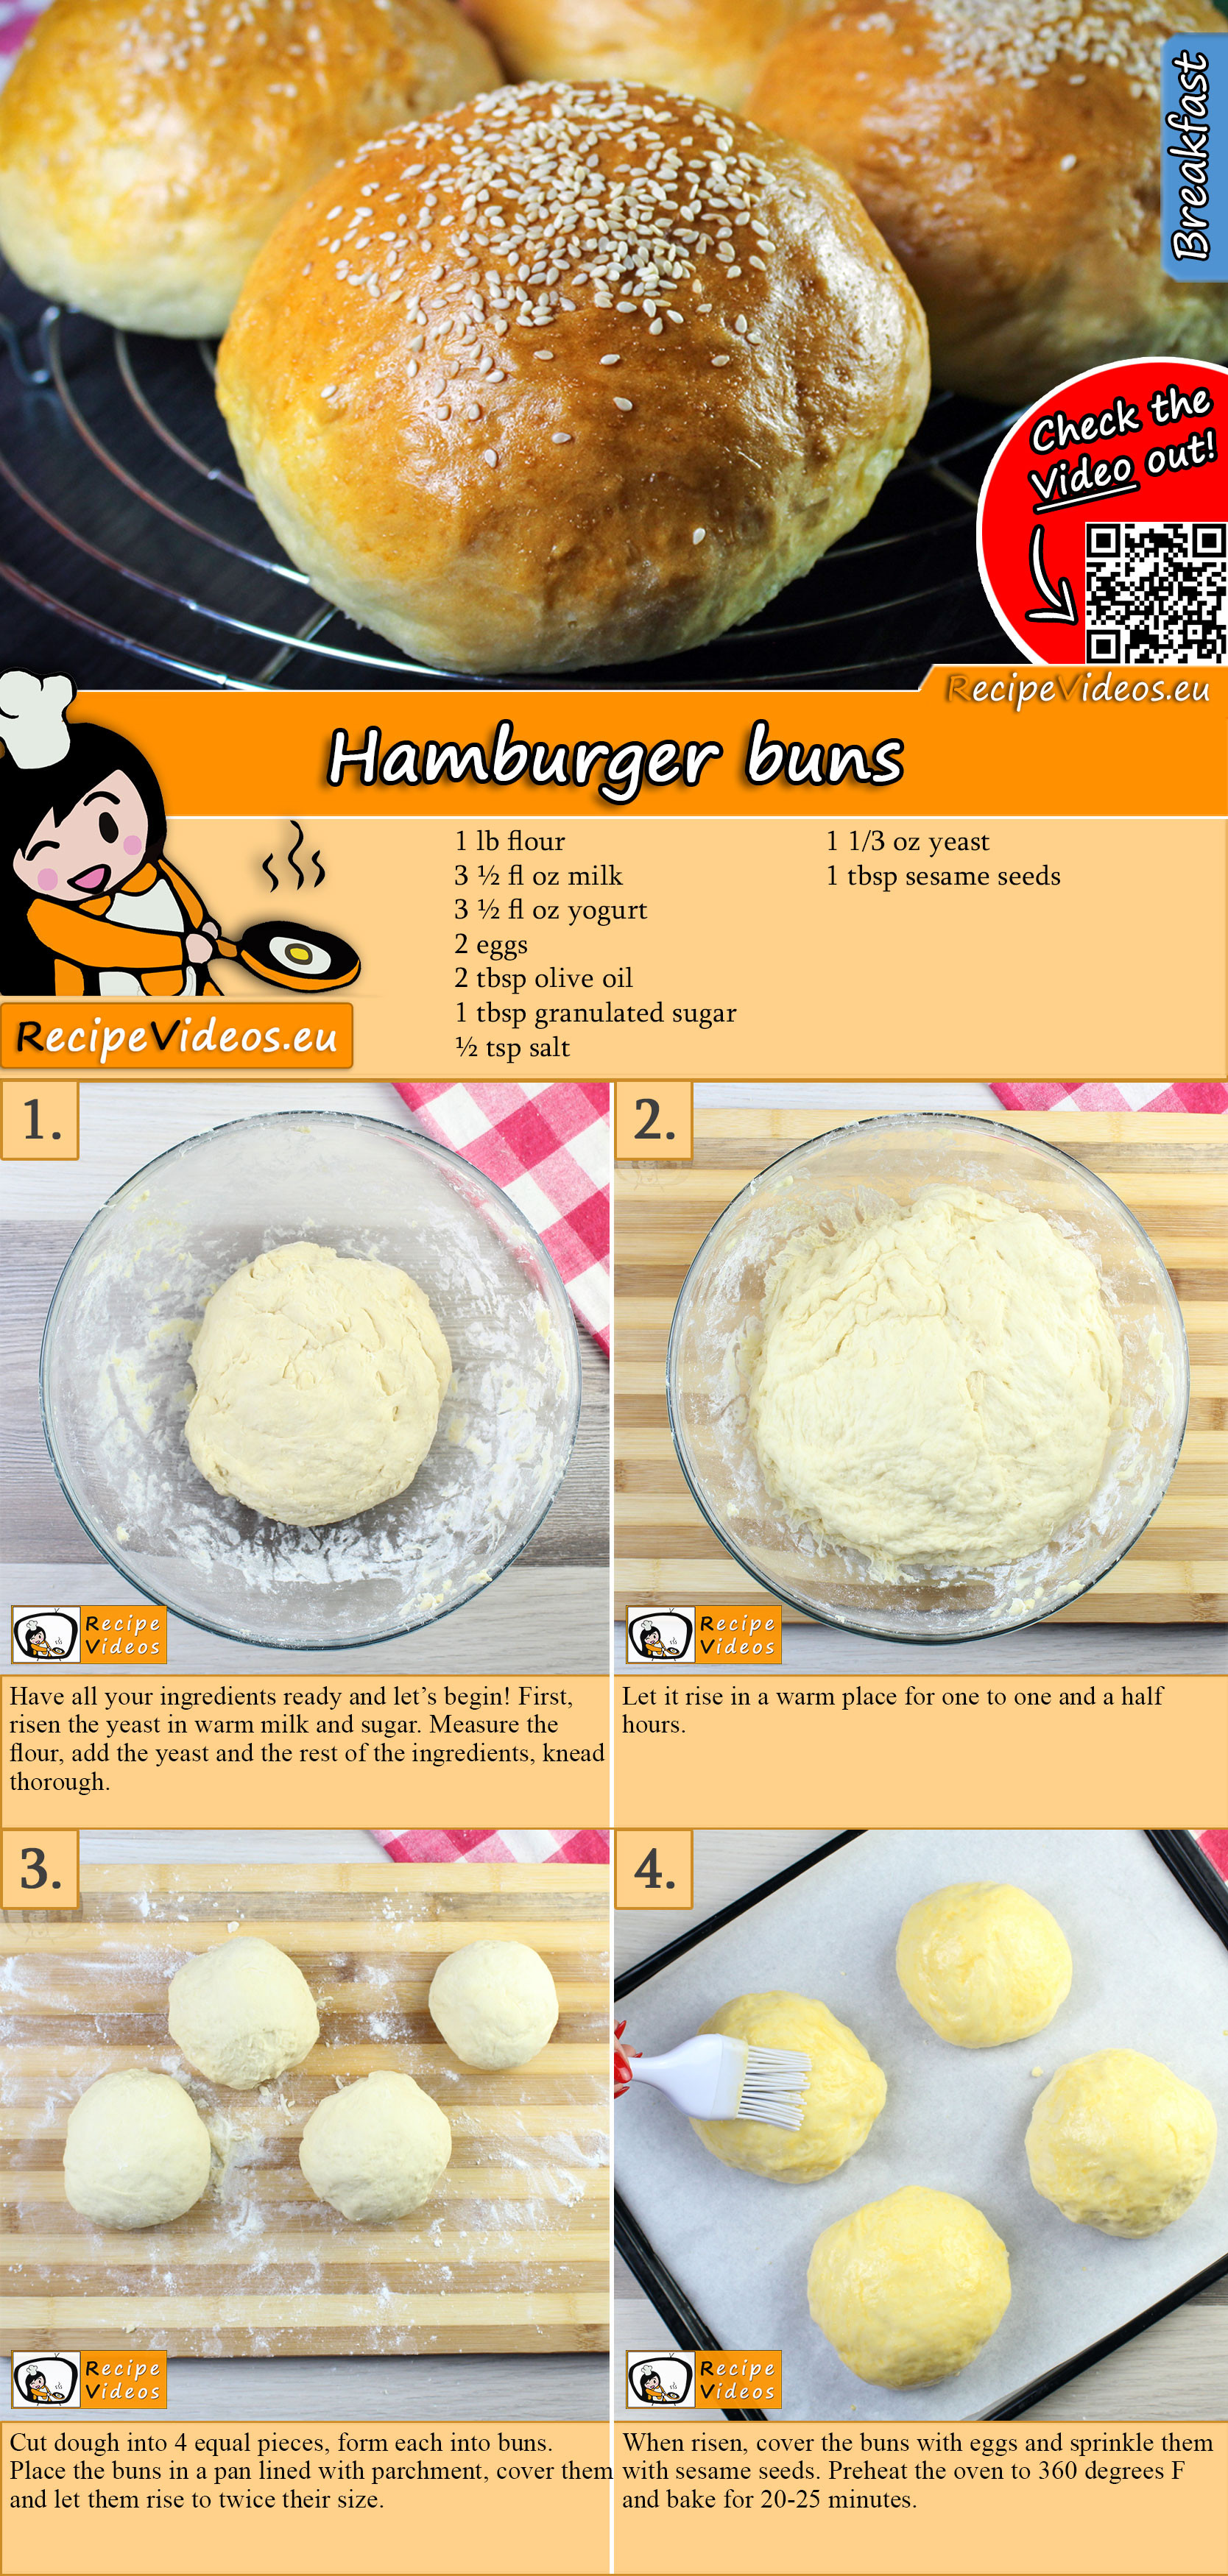 Hamburger buns recipe with video